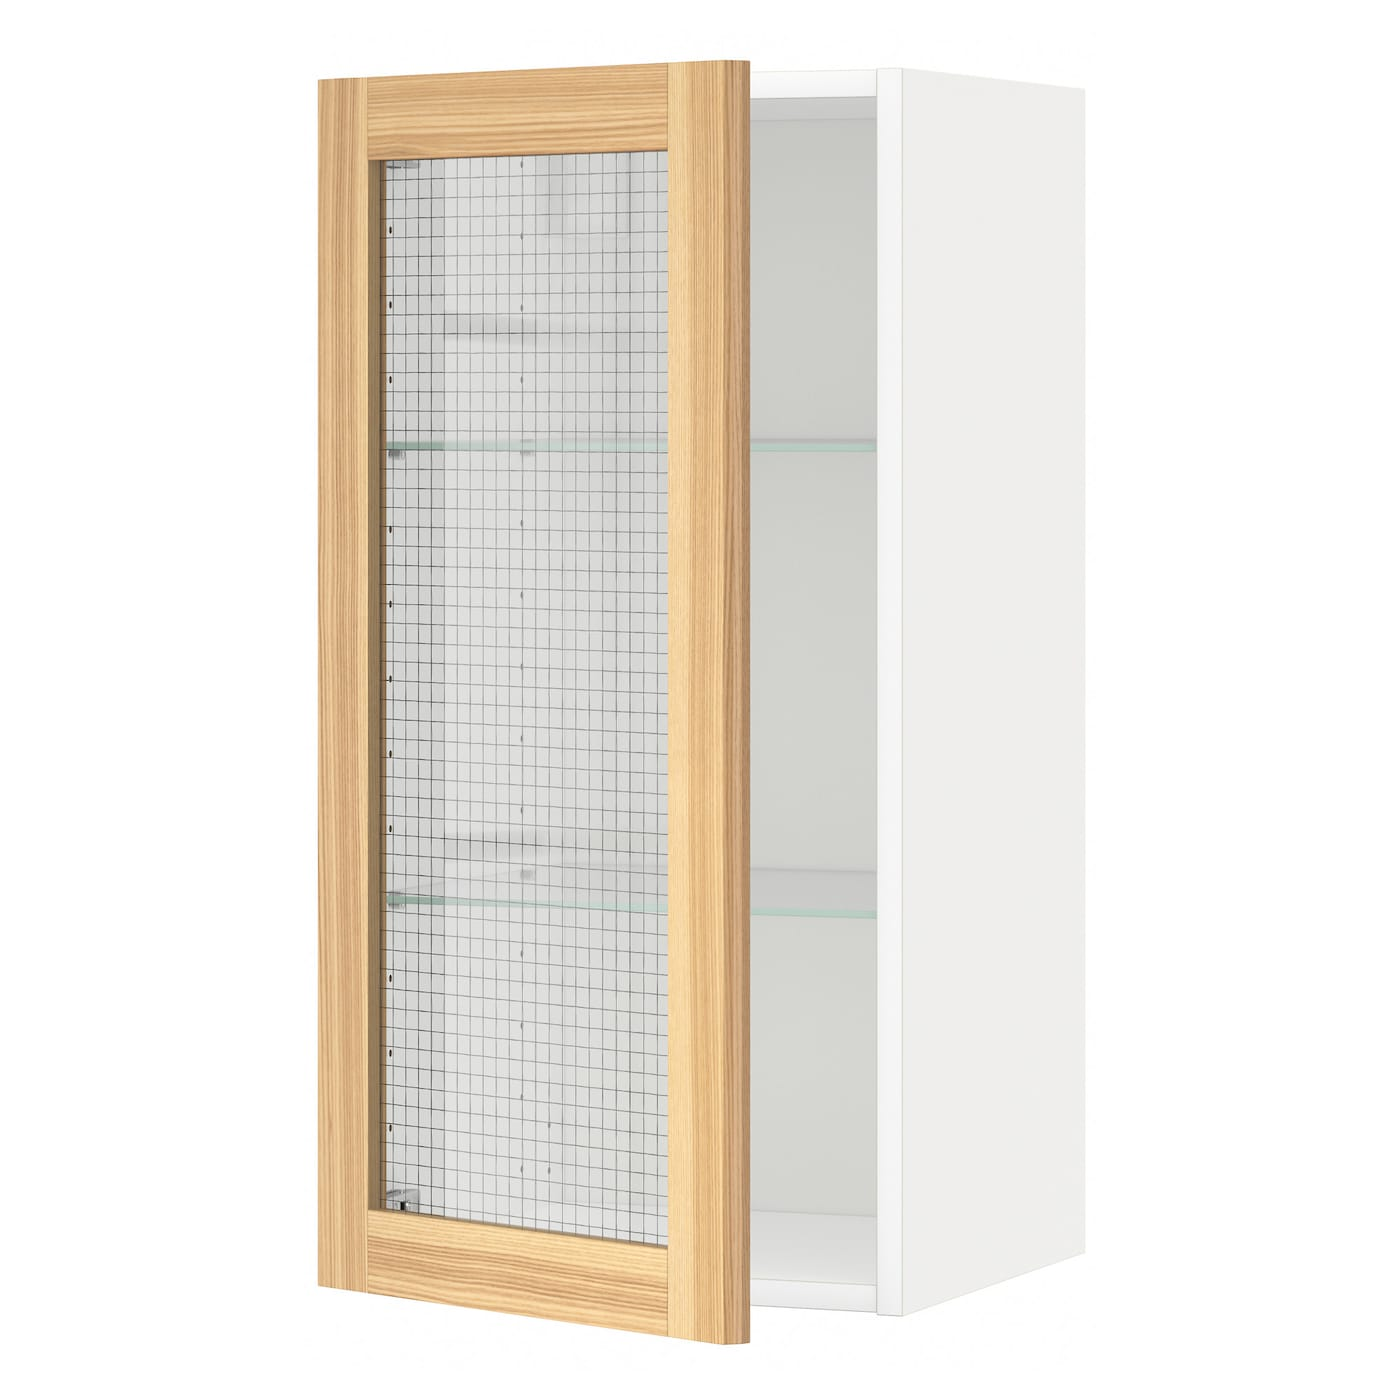 Metod wall cabinet w shelves glass door white torhamn ash for Ikea glass door wall cabinet